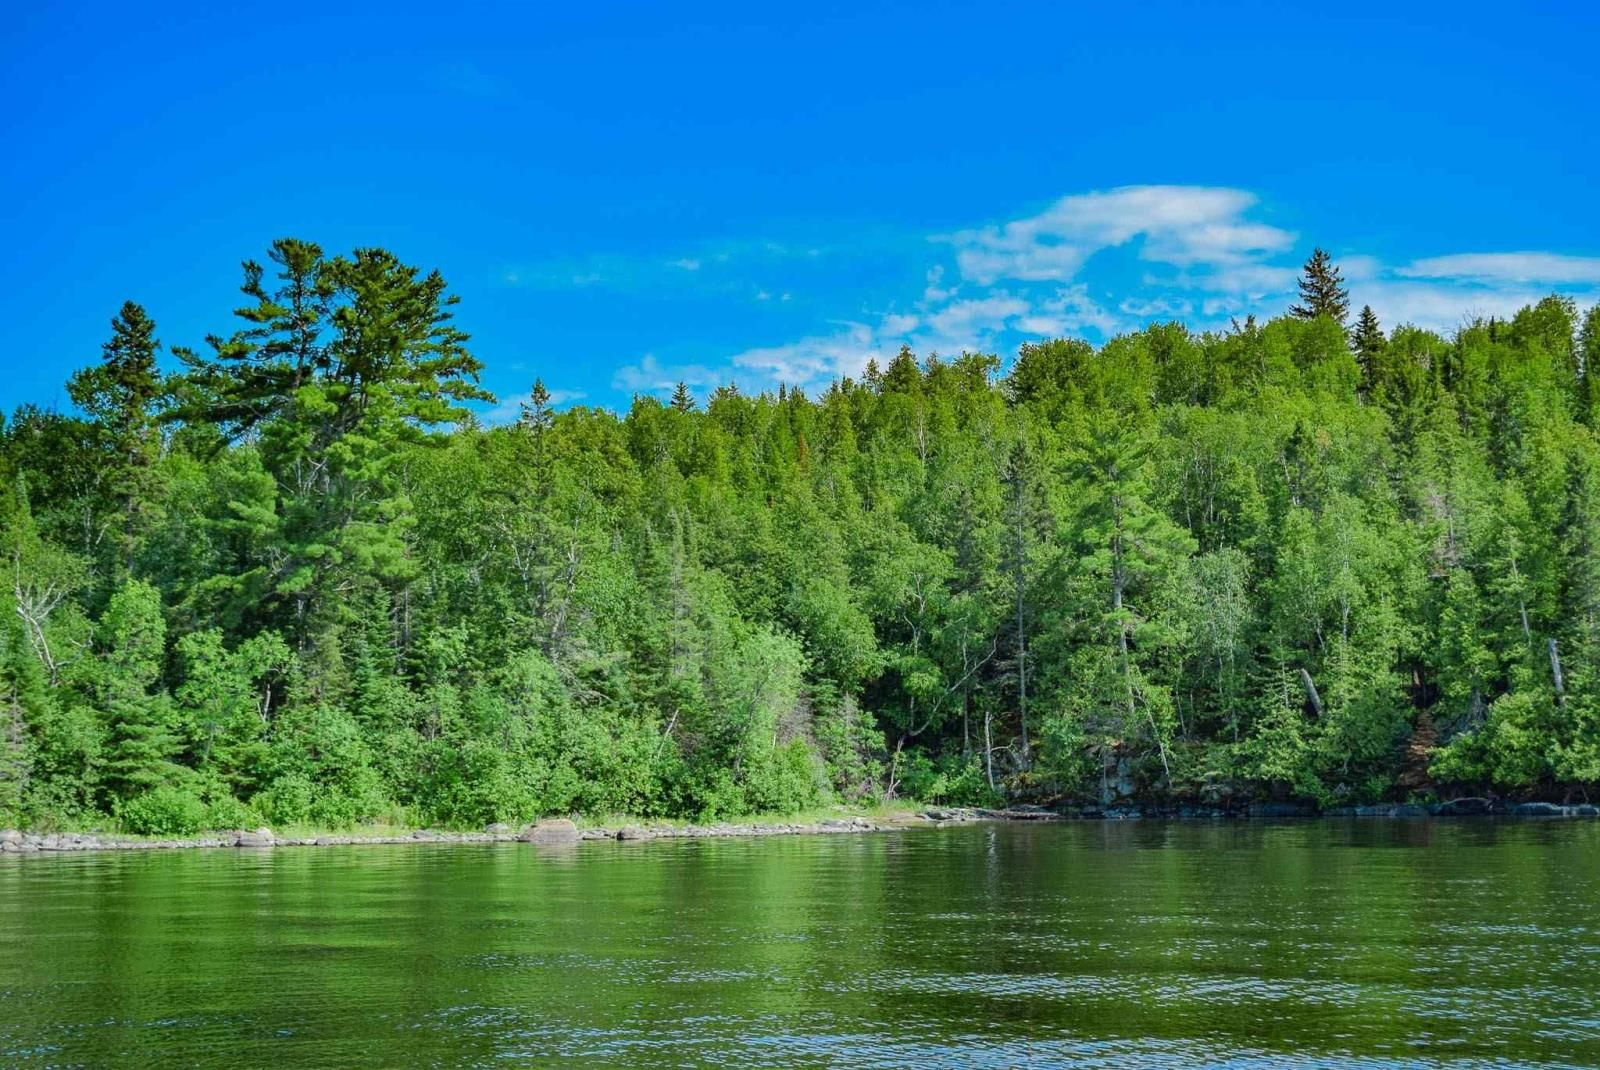 Main Photo: Lot 19 Five Point Island in South of Kenora: Vacant Land for sale : MLS®# TB212087